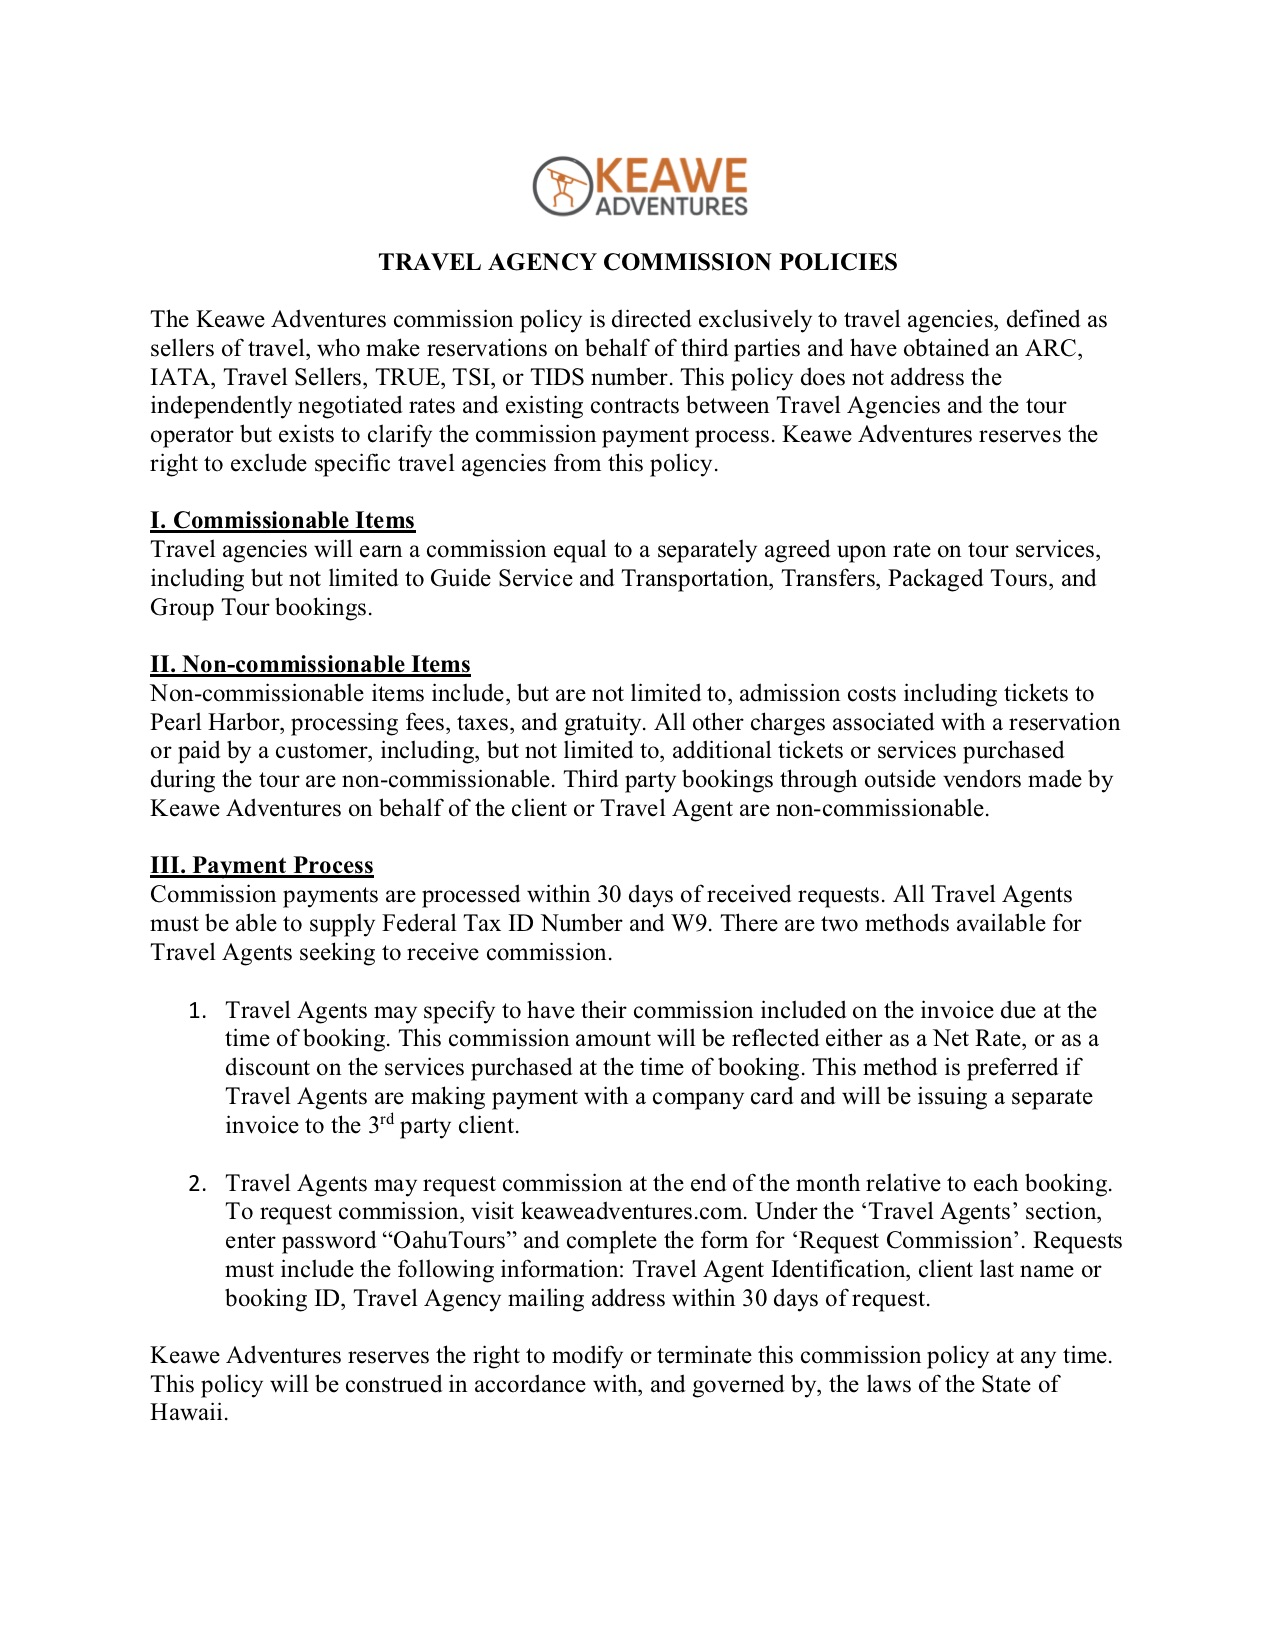 TRAVEL AGENCY COMMISSION POLICIES.jpg